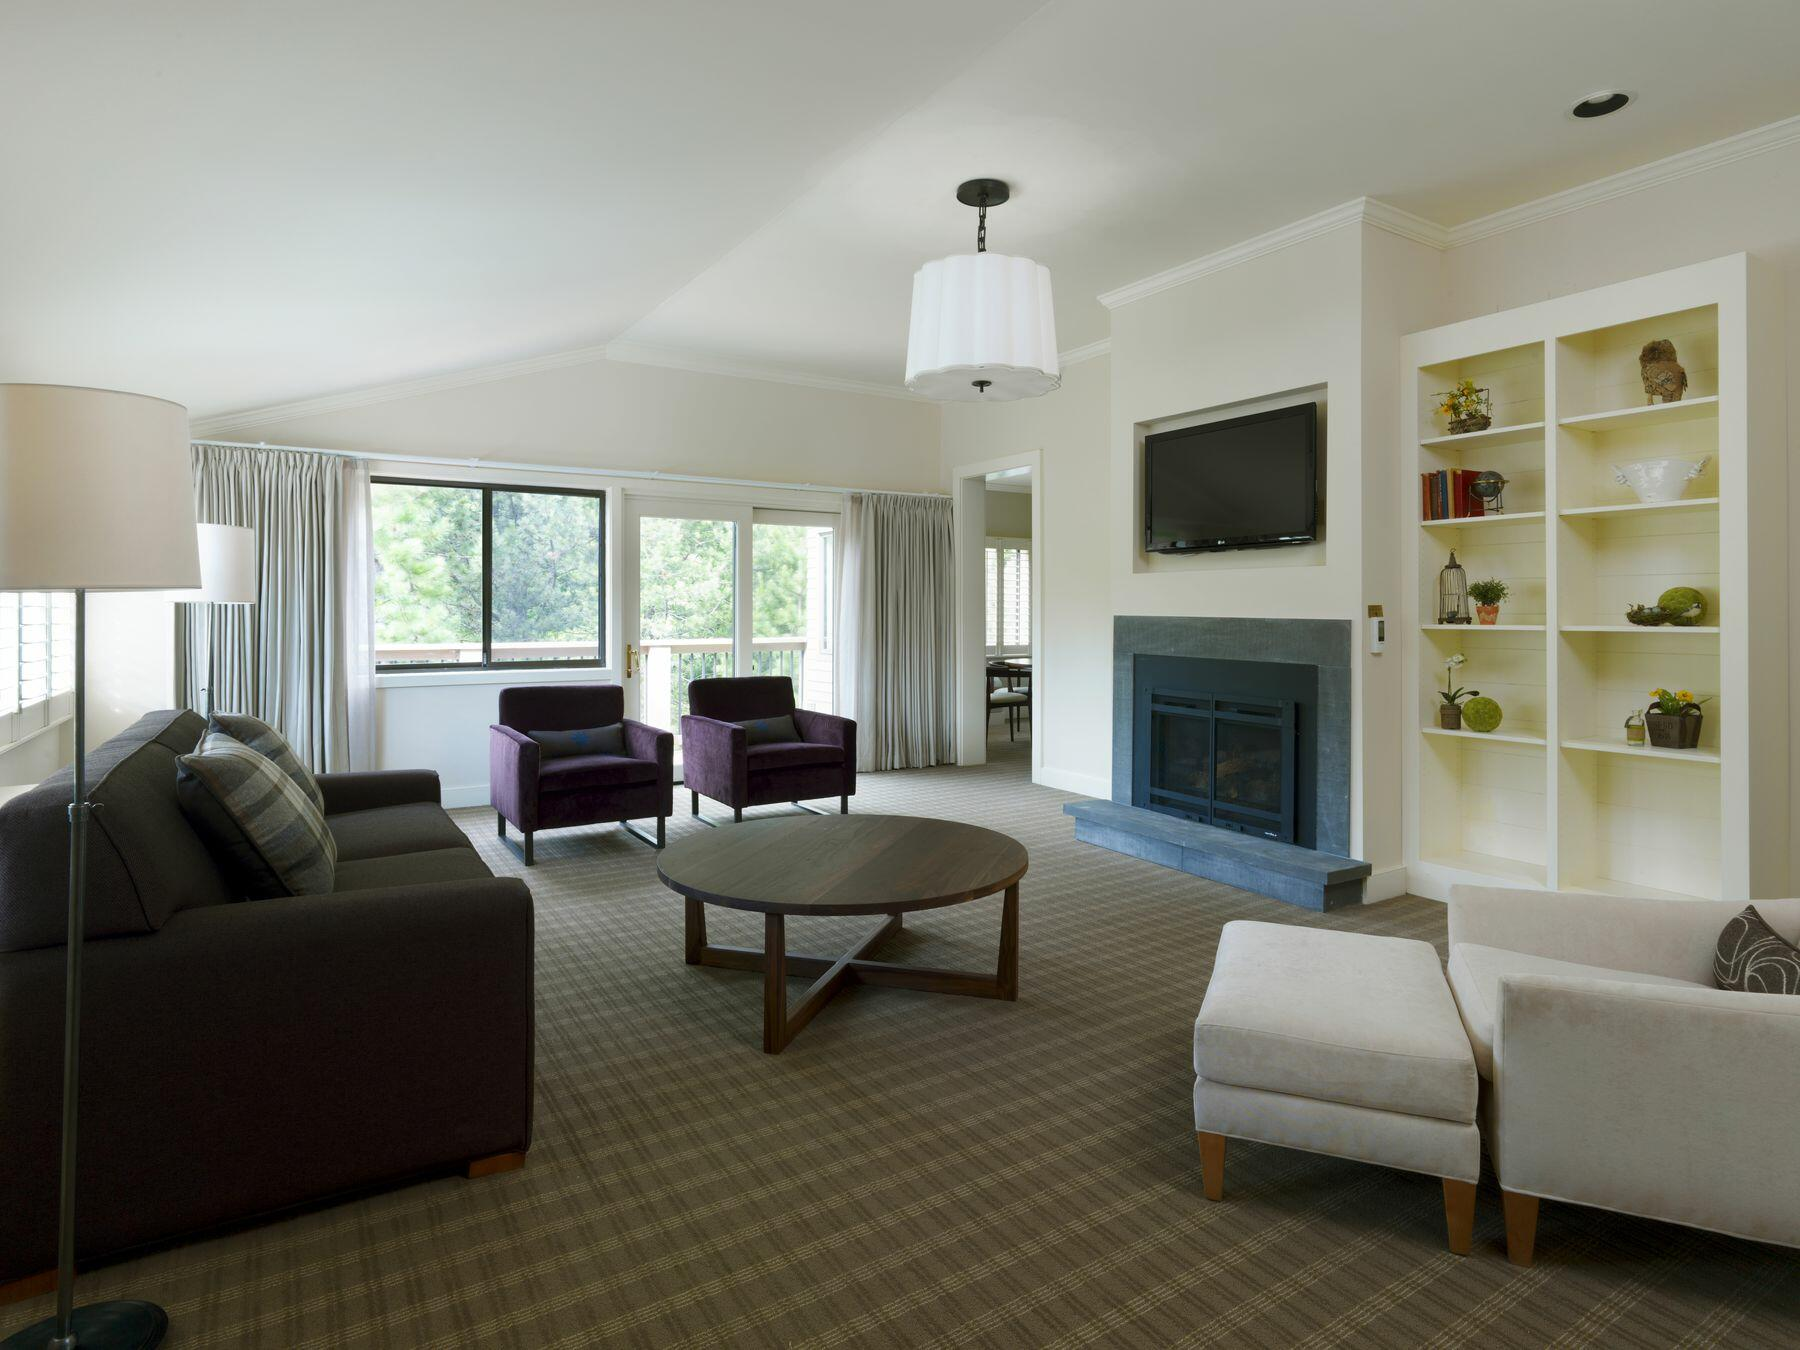 Living area of hotel suite.